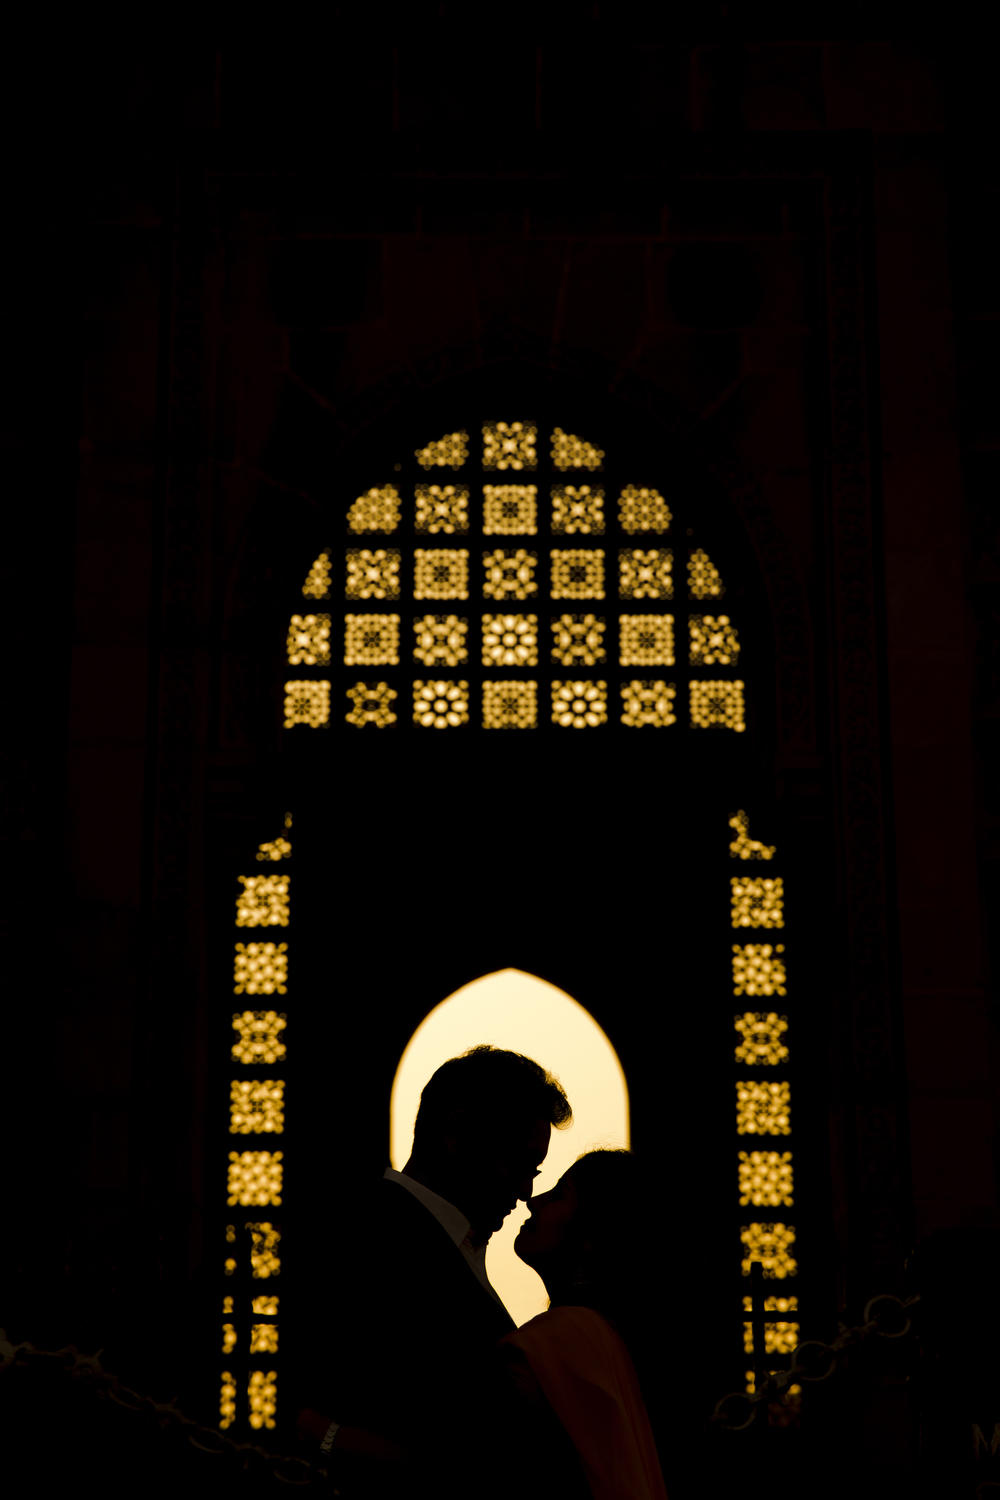 Silhouette couple portrait at Taj Mahal architecture